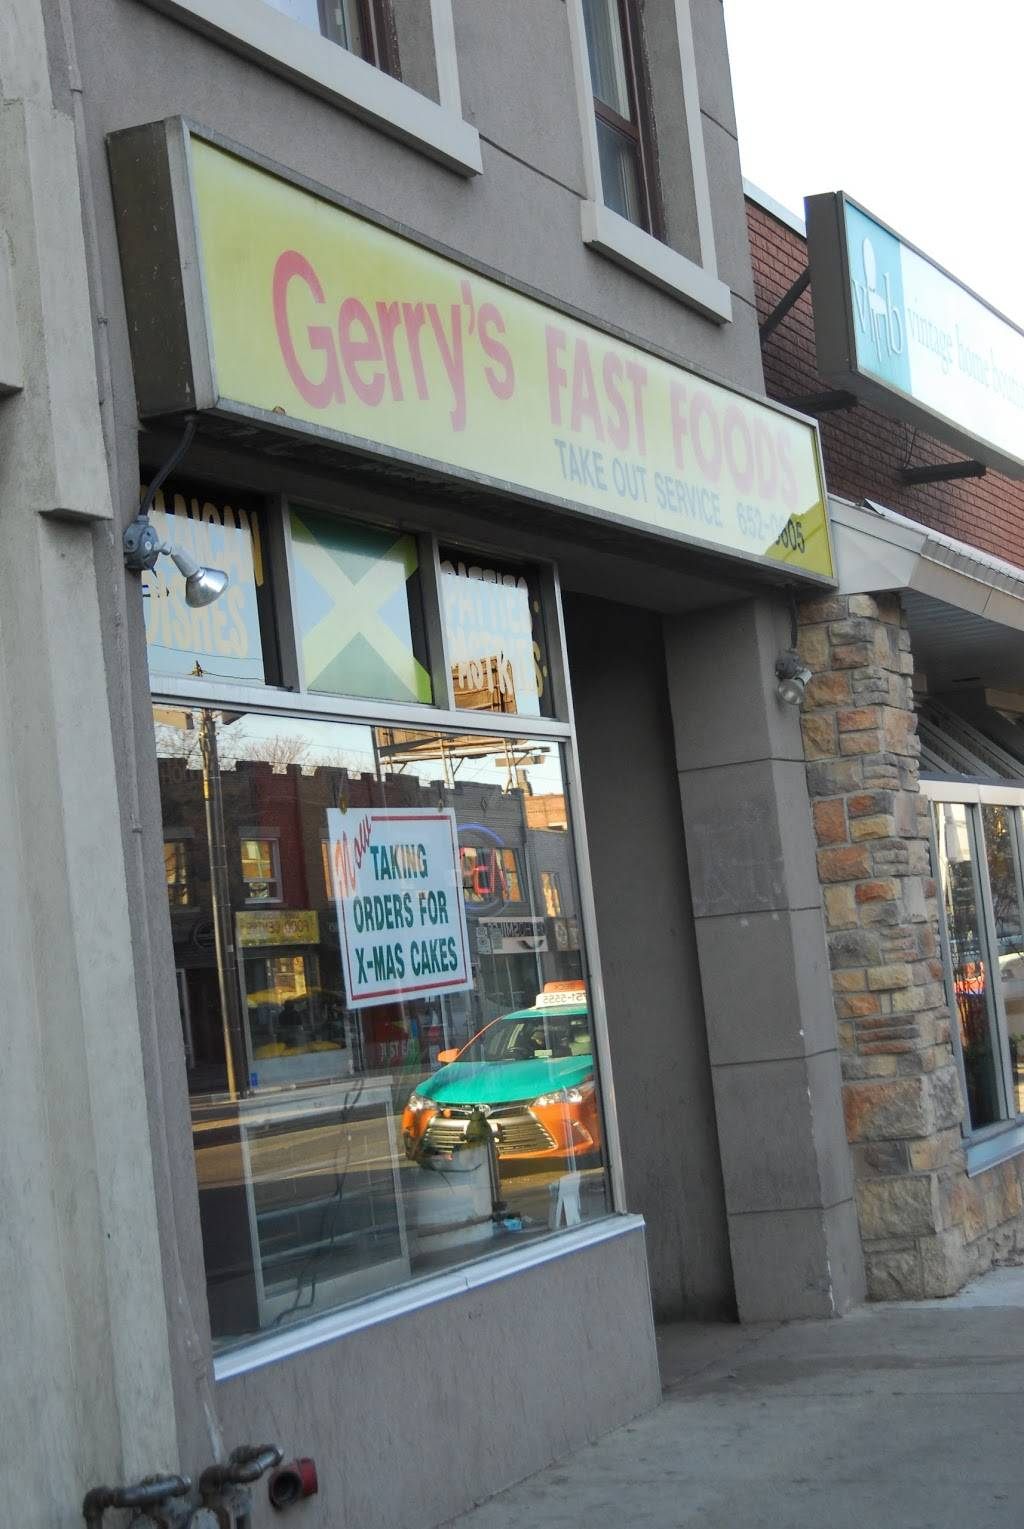 Gerrys Fast Foods | meal delivery | 724 St Clair Ave W, Toronto, ON M6C 1B3, Canada | 4166520605 OR +1 416-652-0605